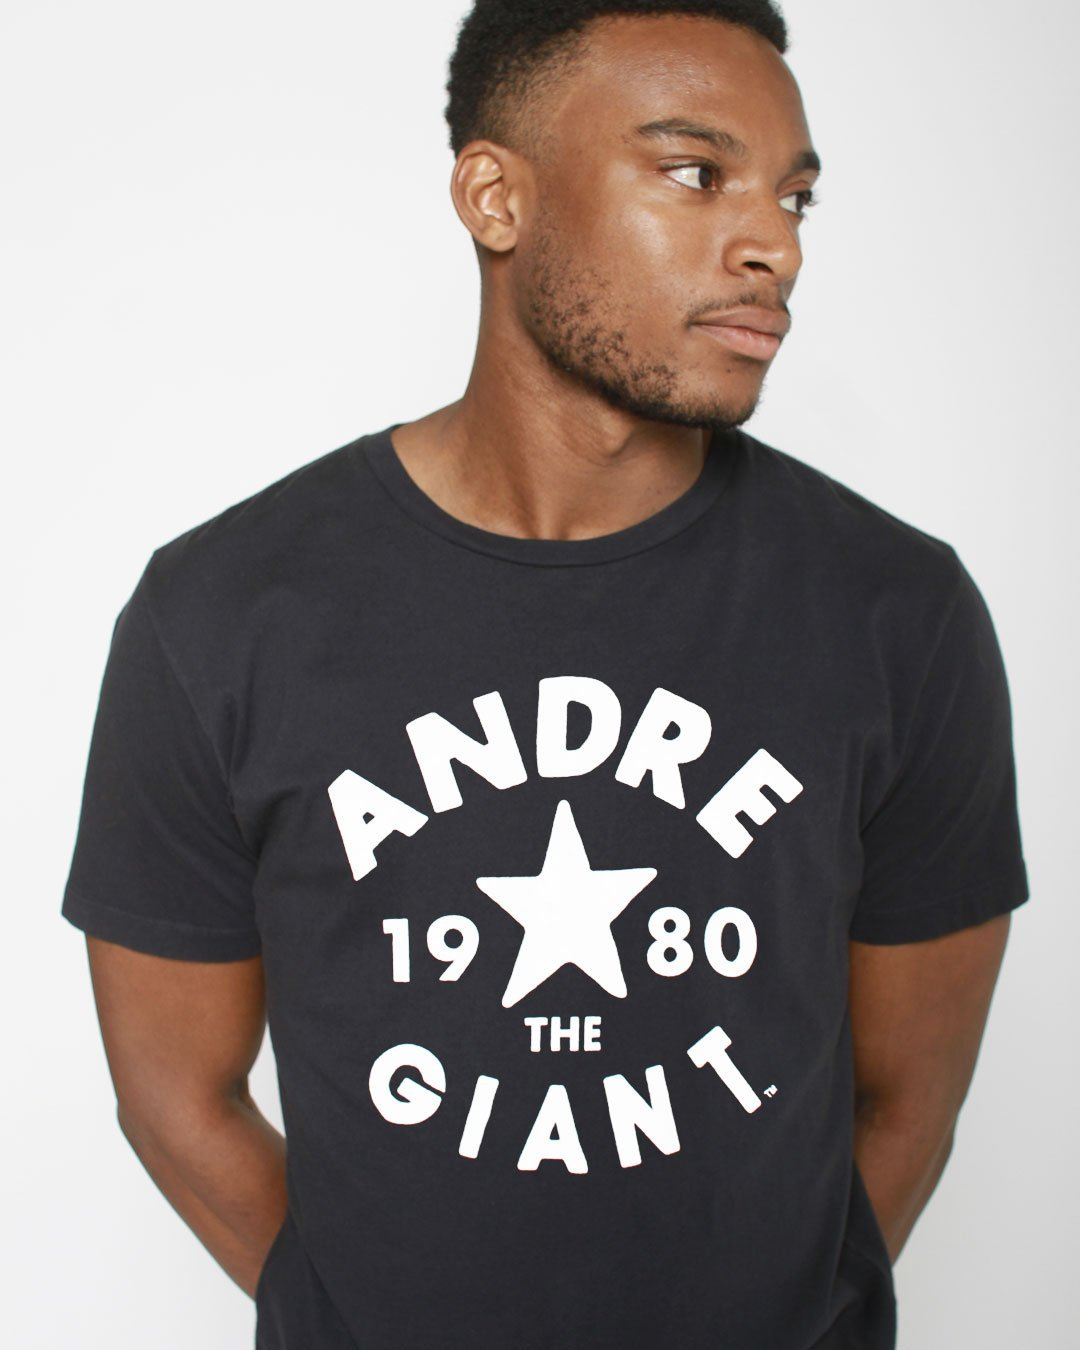 Andre the Giant 1980 Tee - Roots of Inc dba Roots of Fight